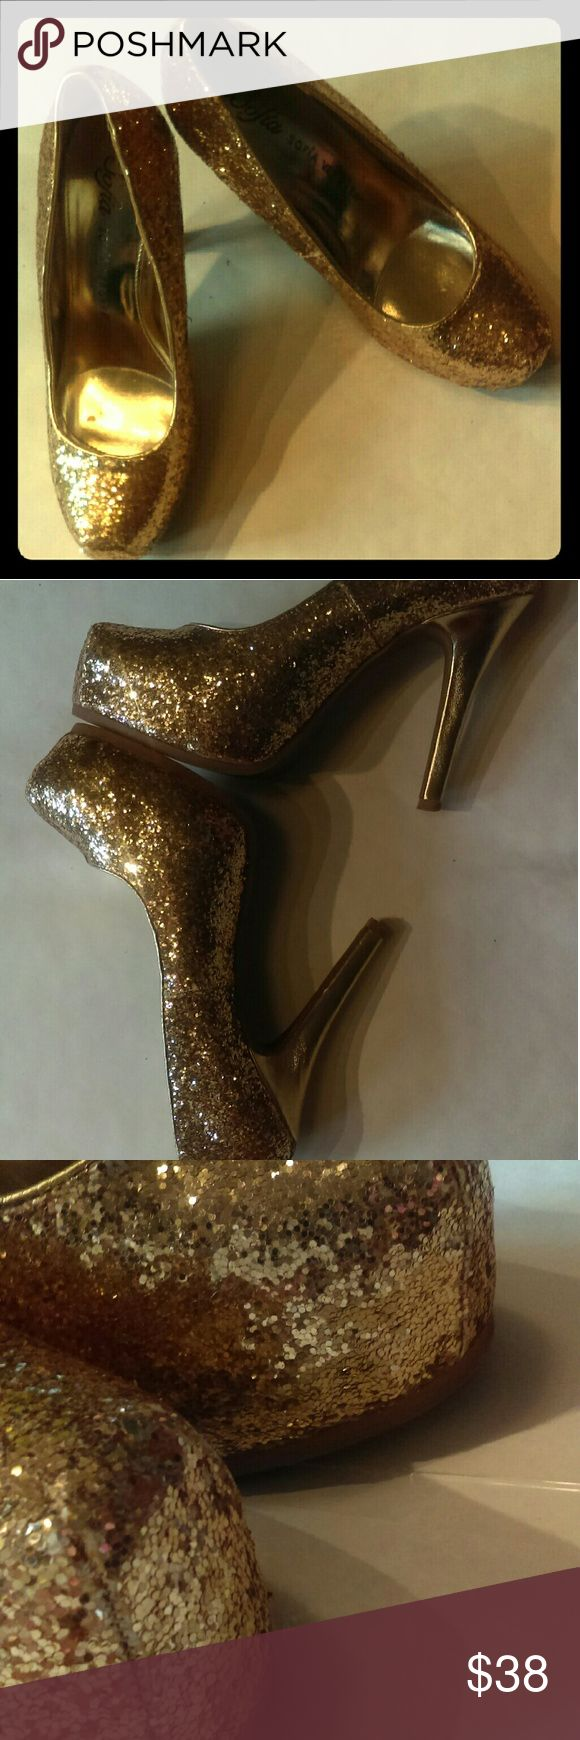 Sofia Vergara Gold Glitter Pumps size US8 Sofia Vergara Stunning Beautiful  Gold Glitter  Pumps size US8 good condition has a few spots were glitter is coming loose in front but expected for glitter has some wear on bottom as seen in pictures these are a must have for all my glittery unicorns ! Sofia Vergara Shoes Heels